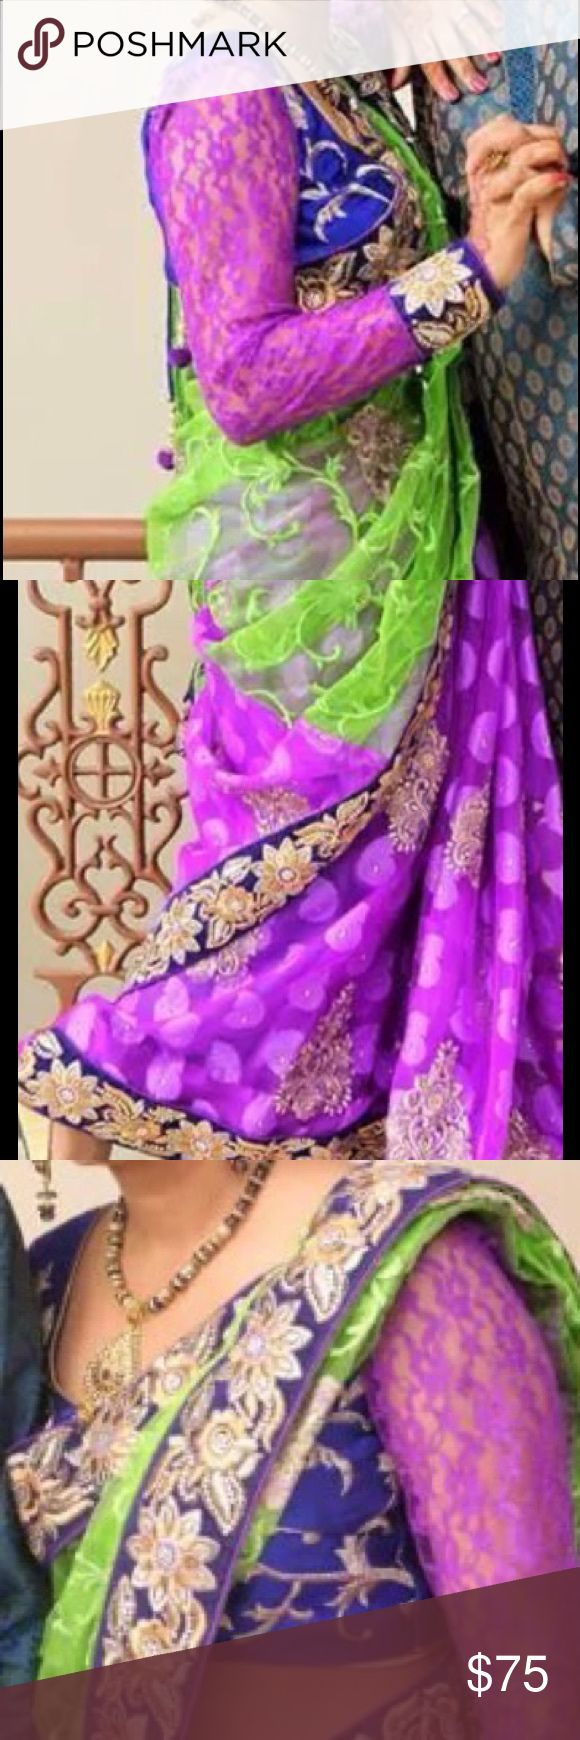 Beautiful purple with green in the middle saree Beautiful saree wore 1 time in good condition blouse long sleeve. Dry cleaned ready to ship Other